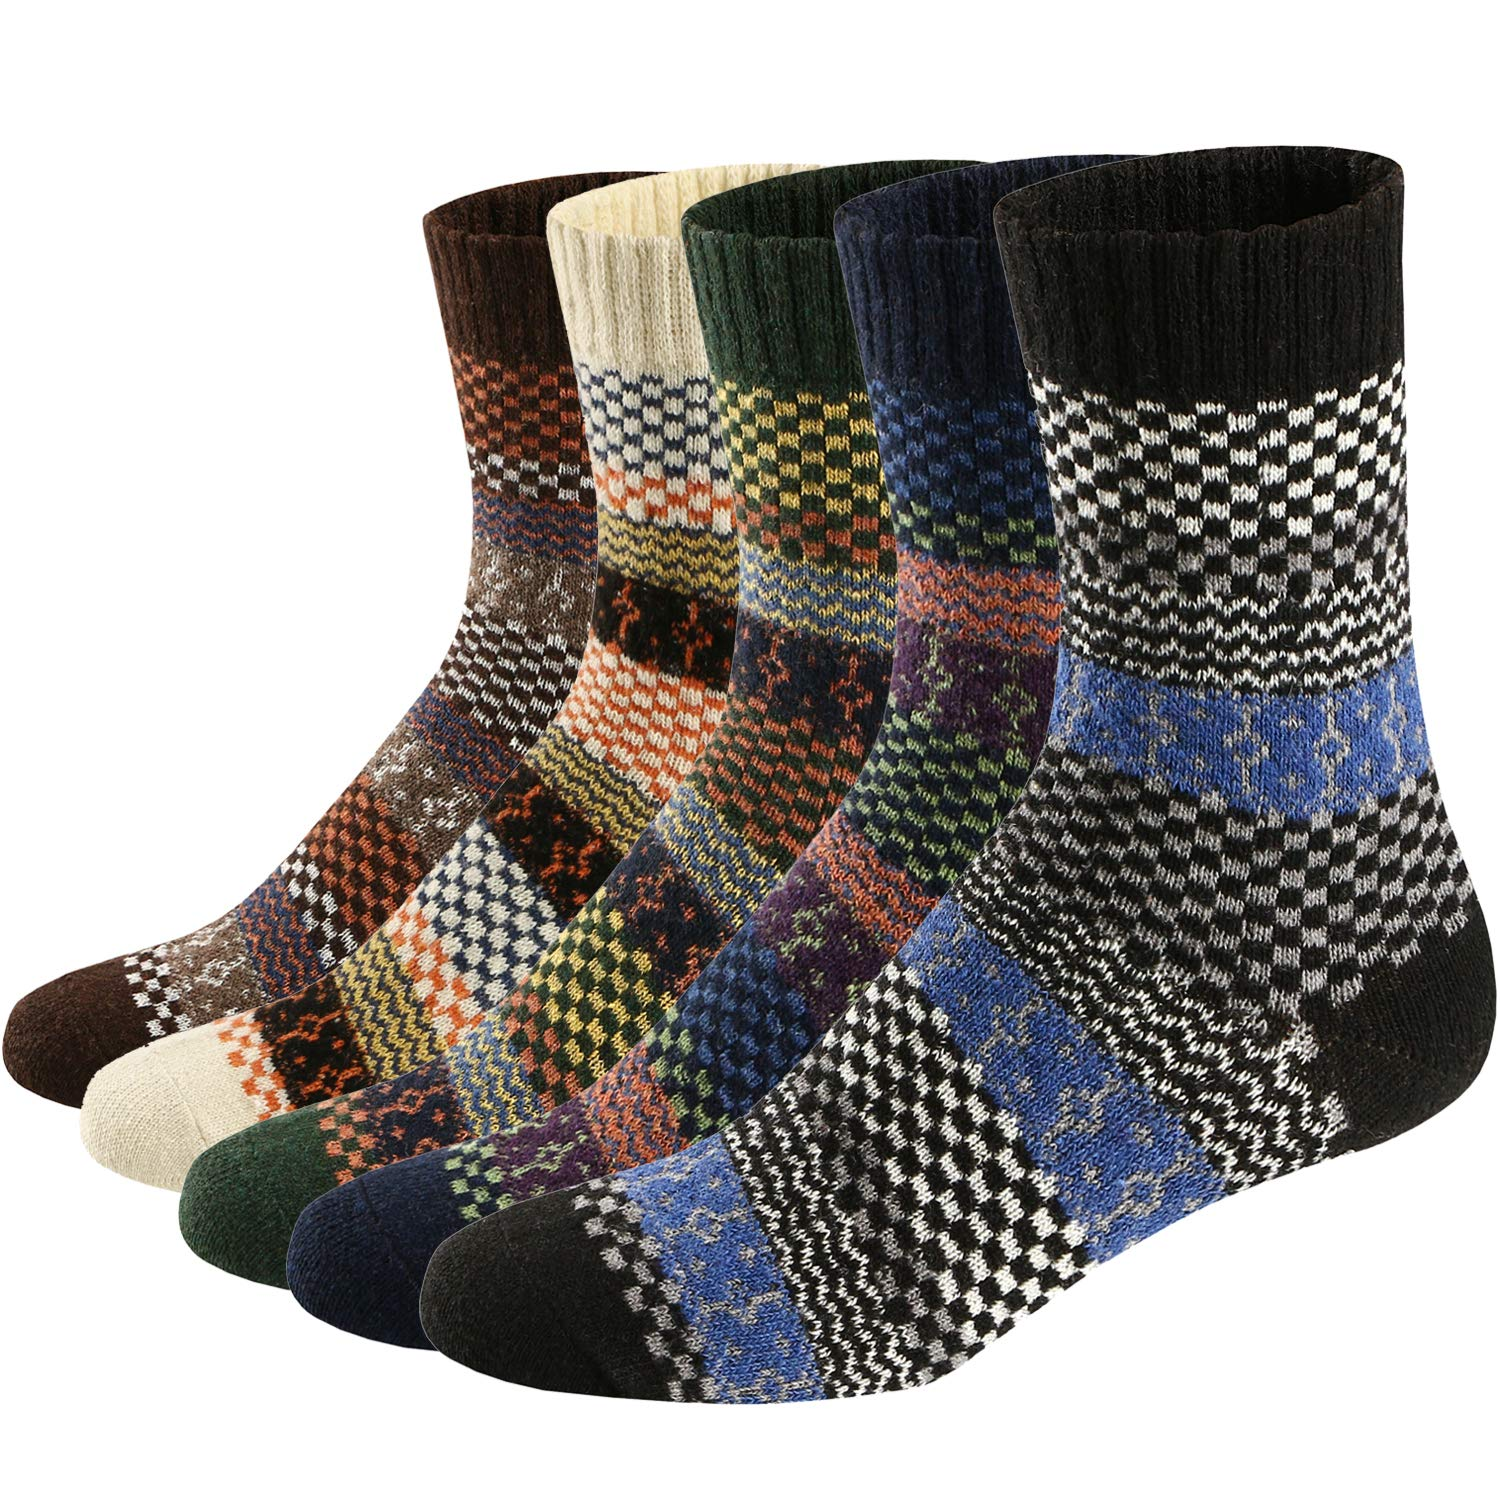 Mens Thick Knit Warm Casual Wool Crew Winter Socks for Men or Women Color 1 (5 Pairs))